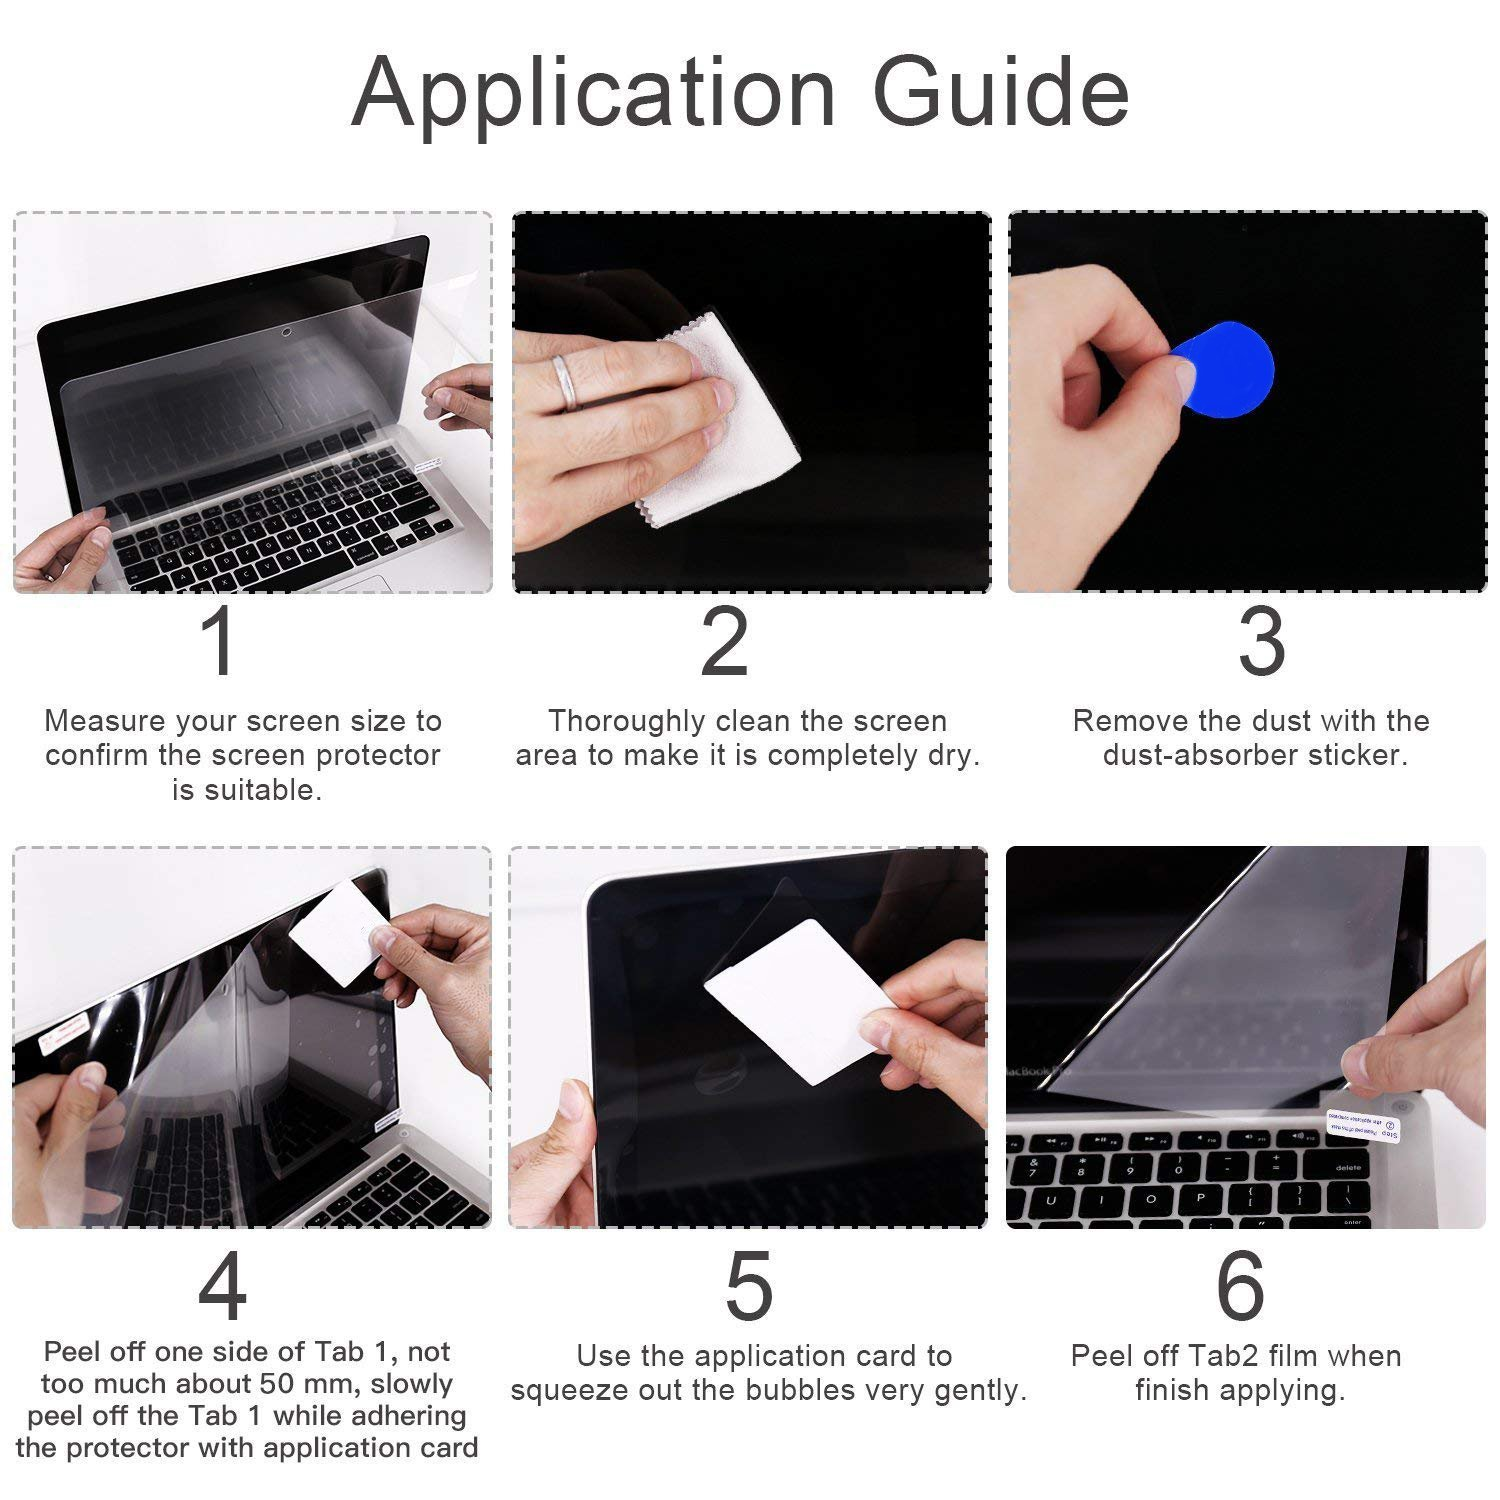 YOUPECK Universal 11.6 inch Laptop Anti Blue Light Screen Protector for 11.6 Inch Notebook, Computer Screen Guard Film for Samsung, HP, Dell, Acer Chromebook R11 11.6, ASUS Chromebook C202SA (2-Pack) by YOUPECK (Image #9)